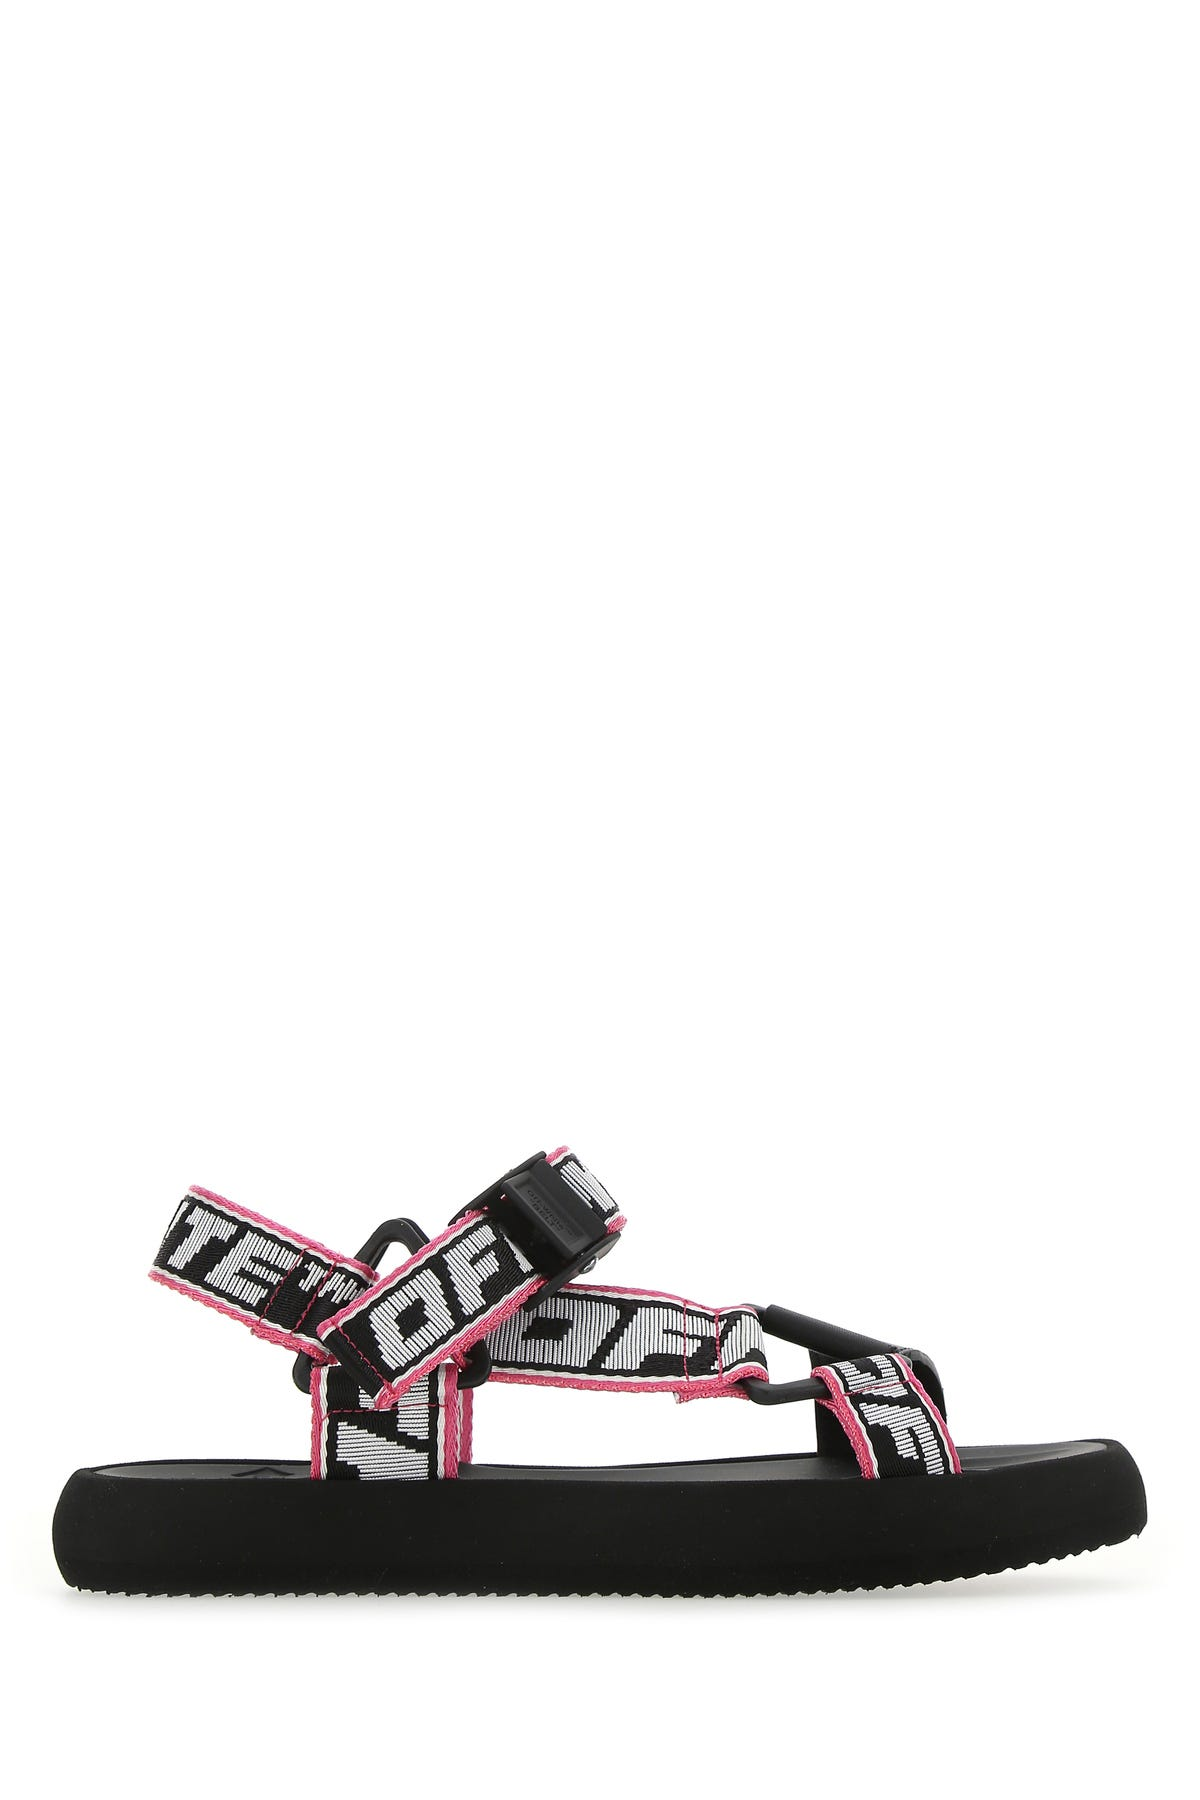 Off-White Sandals MULTICOLOR FABRIC AND LEATHER TREK SANDALS  PRINTED OFF WHITE DONNA 40